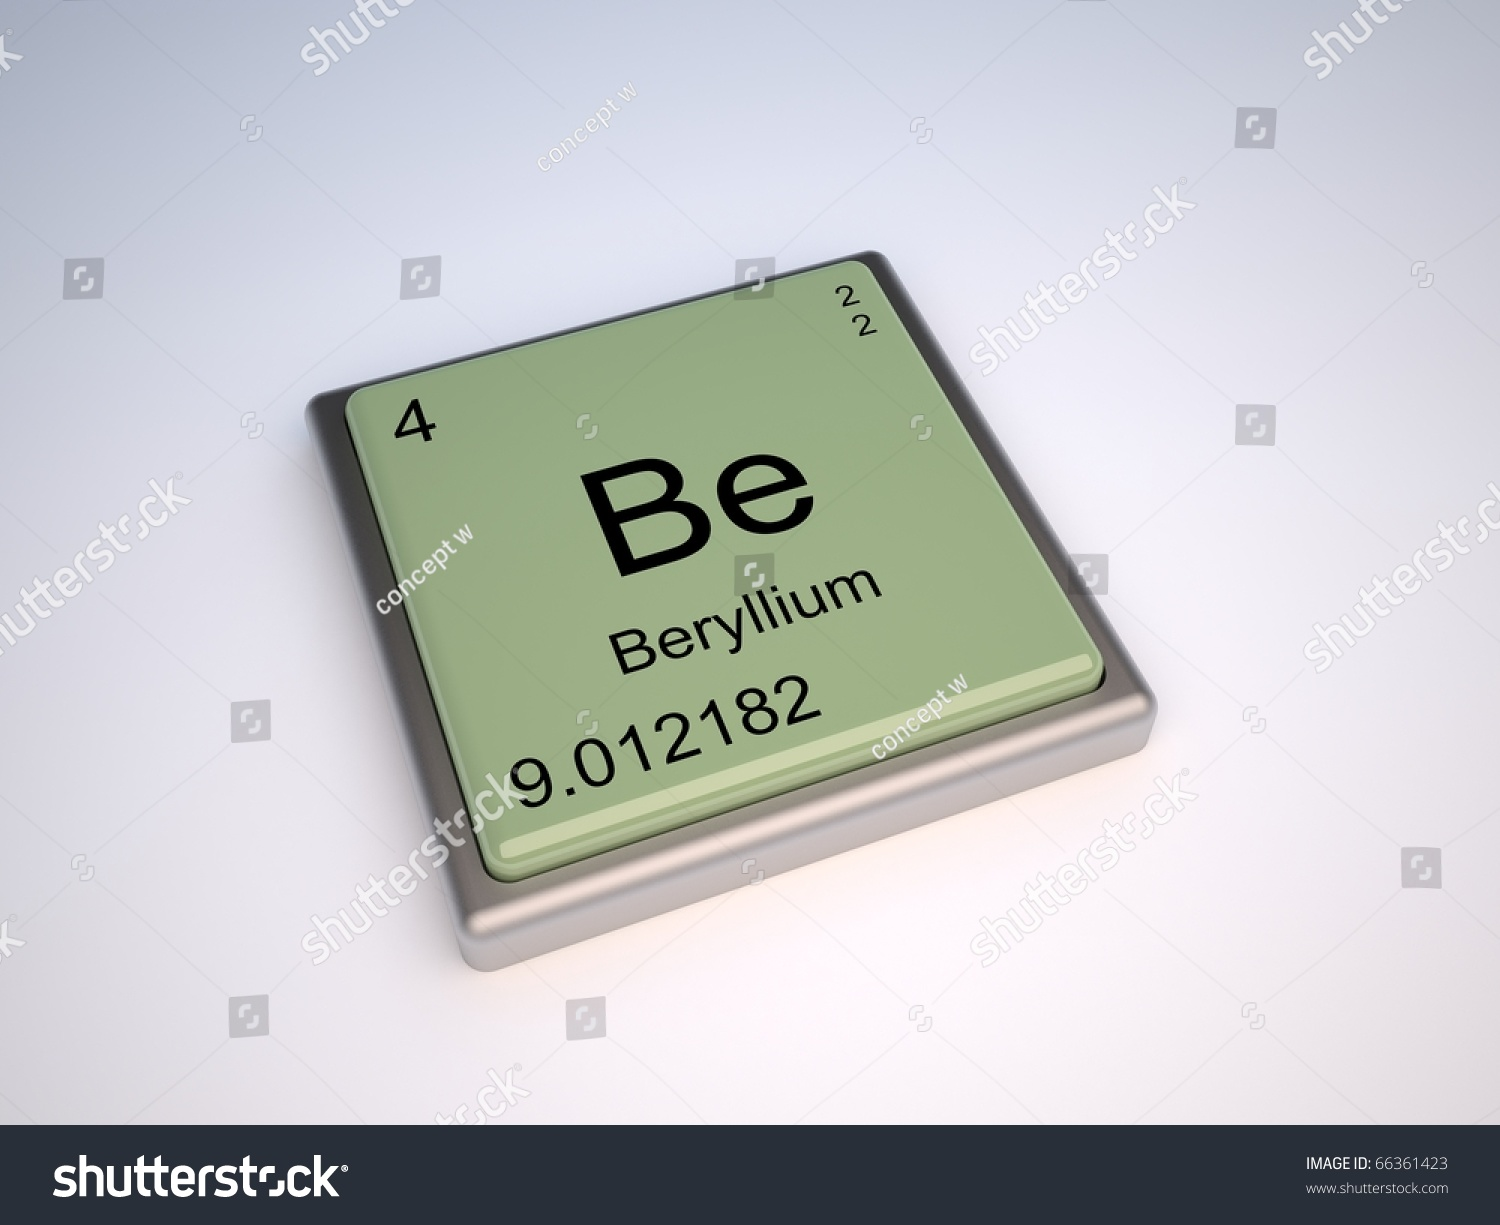 Beryllium chemical element periodic table symbol stock beryllium chemical element of periodic table with symbol be biocorpaavc Images